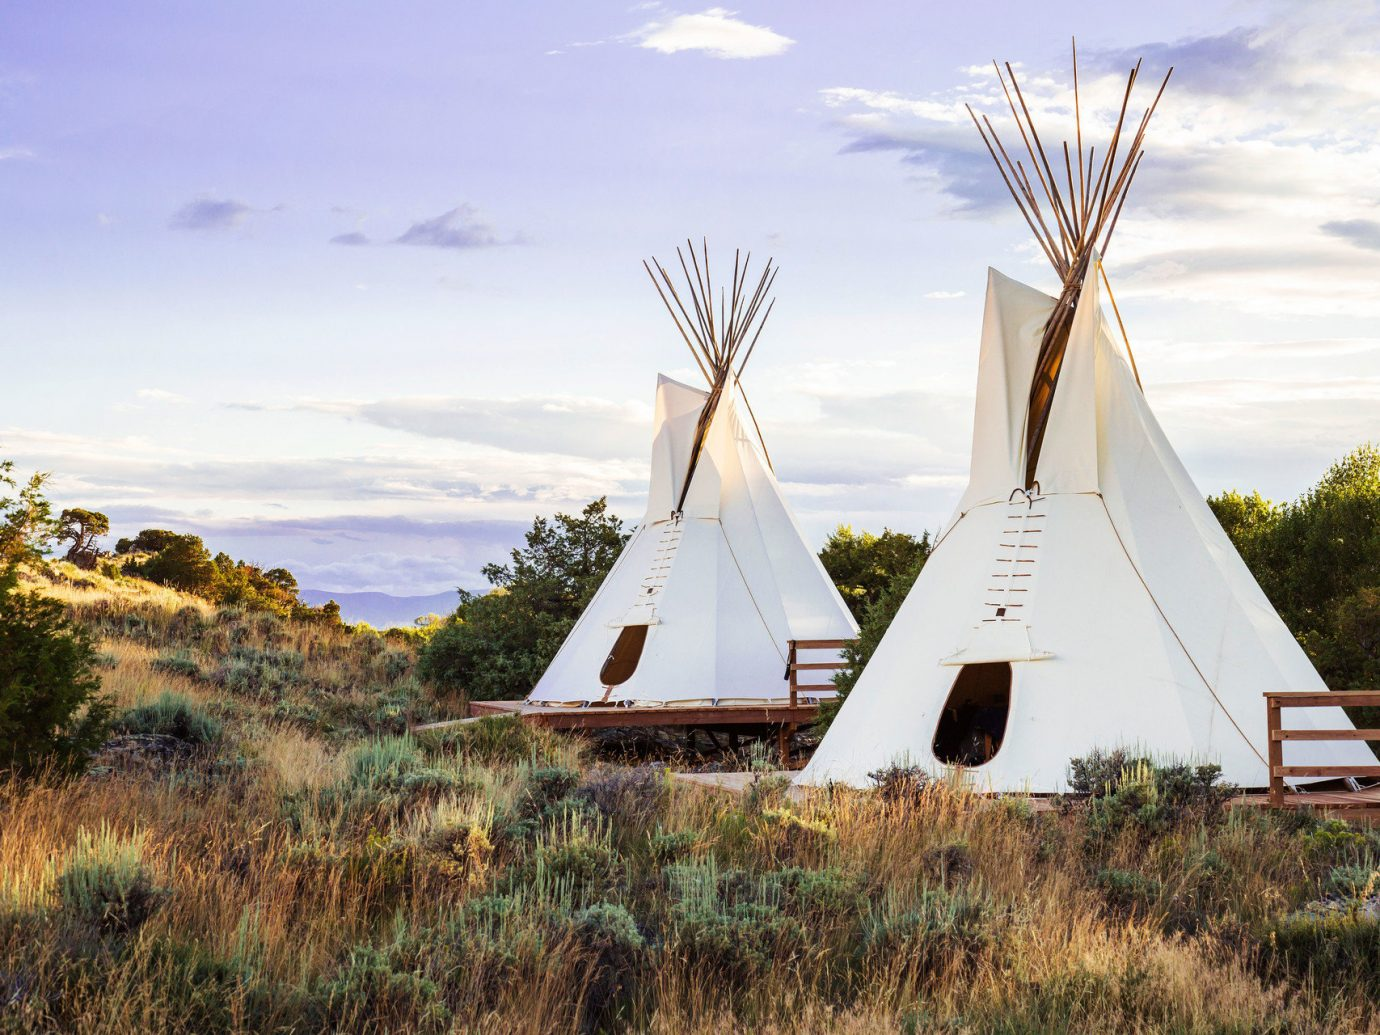 artistic artsy calm Hip isolation Nature Outdoors remote serene teepee trendy Trip Ideas tepee building grass outdoor sky windmill tree field rural area mill wind tower grassy